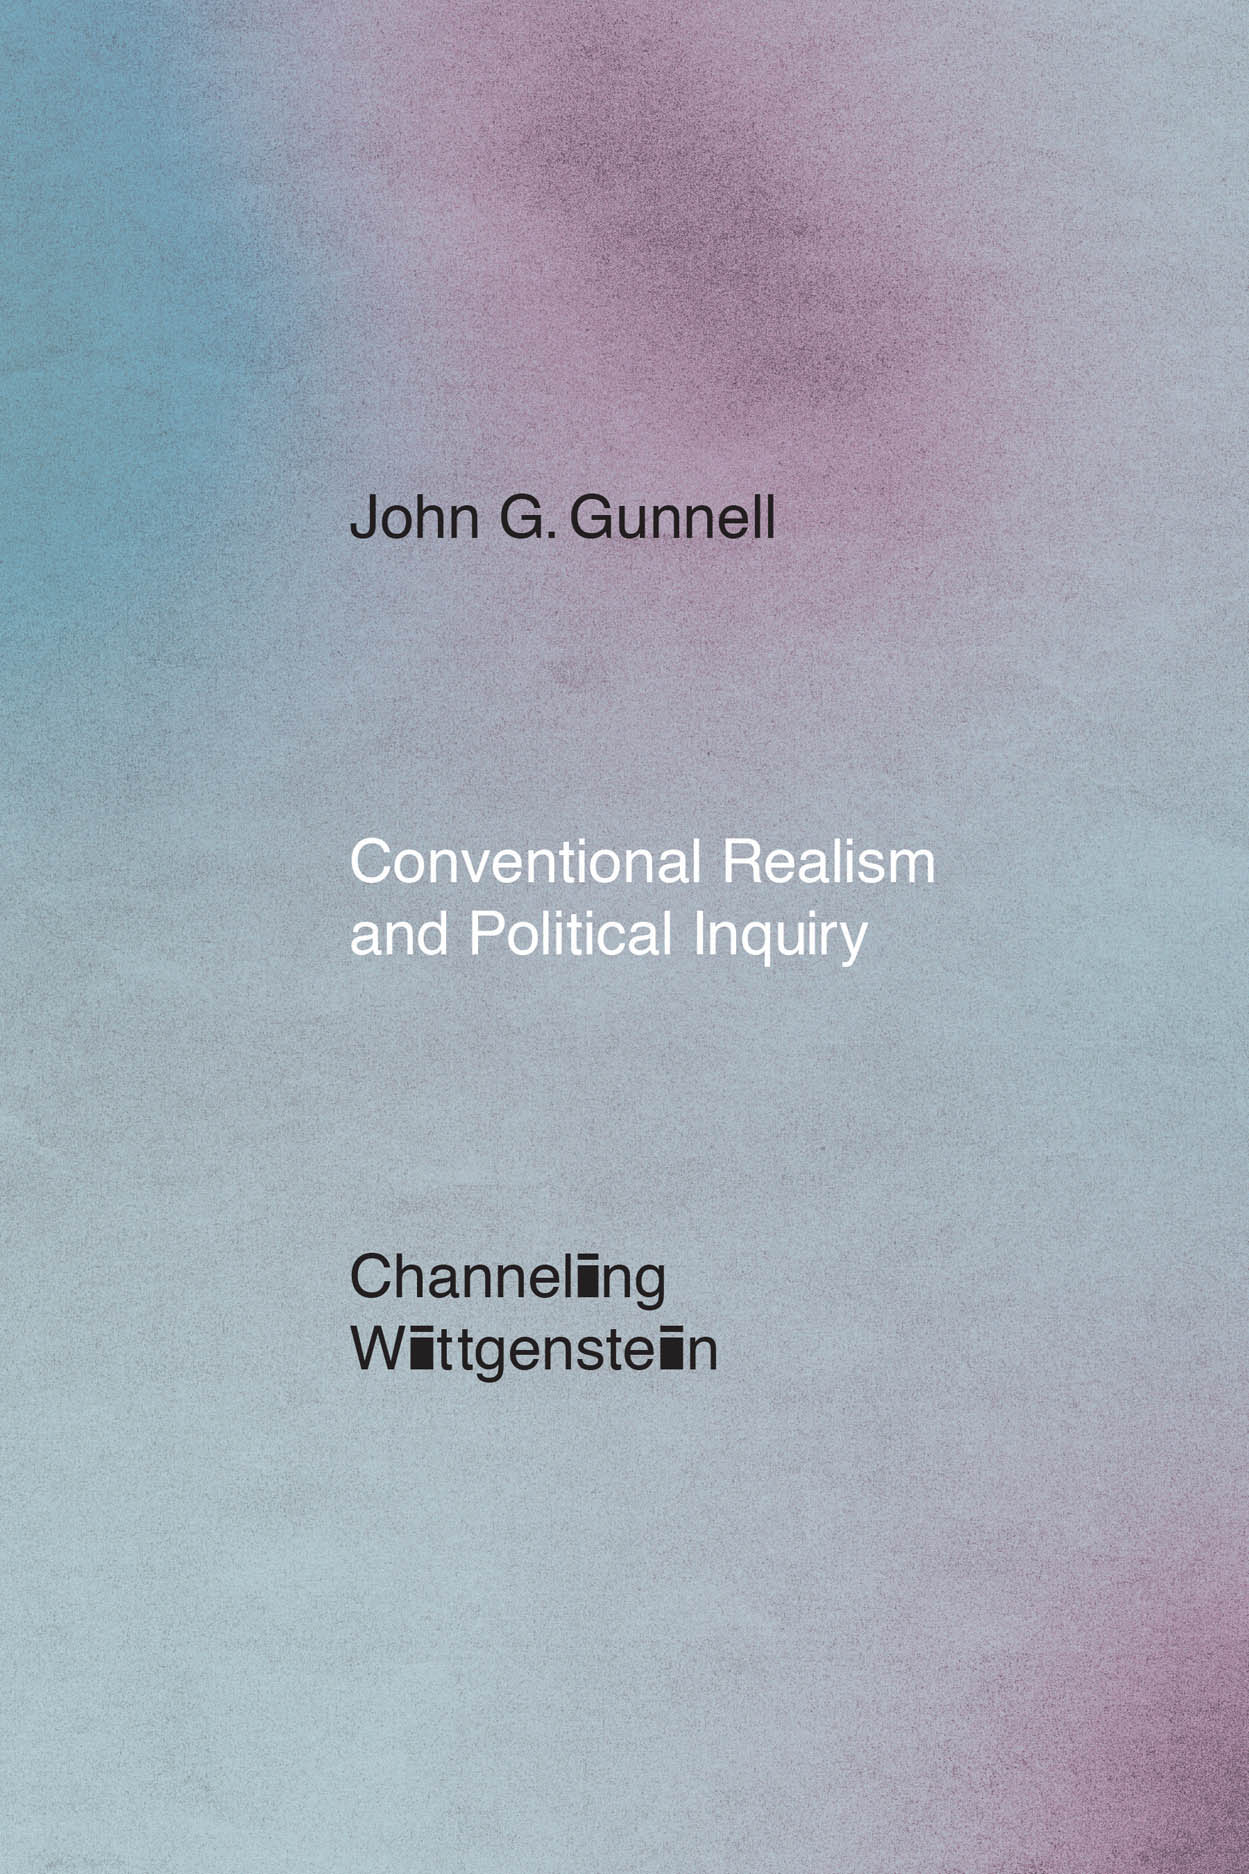 Conventional Realism and Political Inquiry